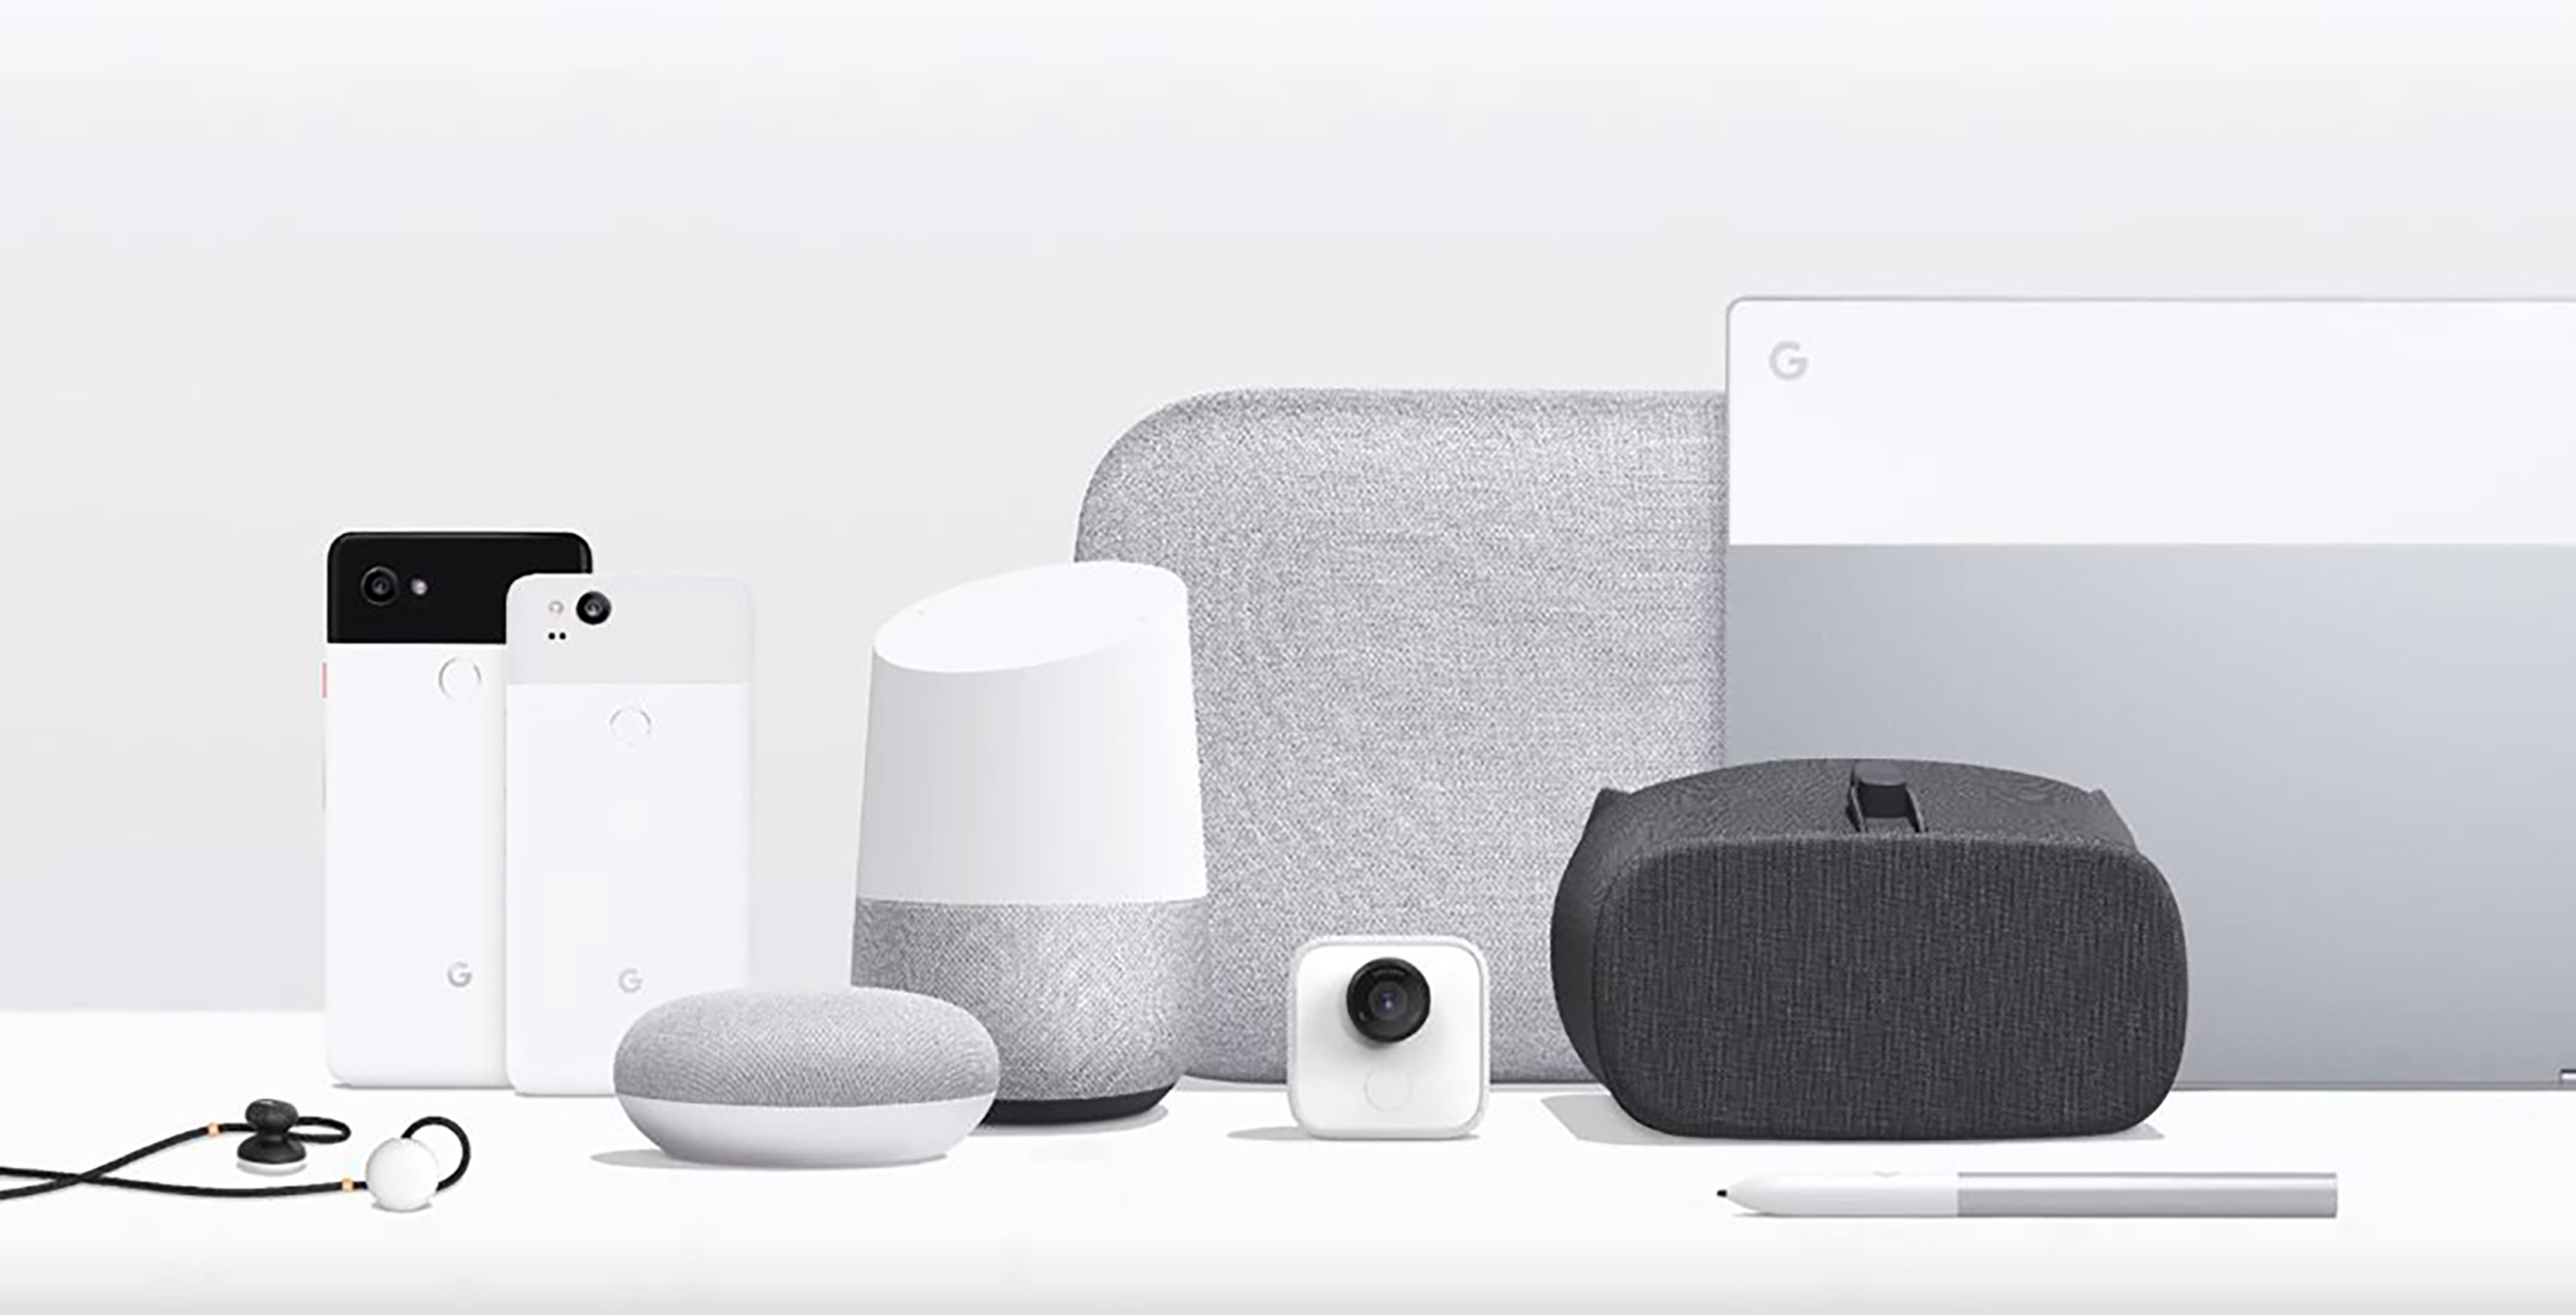 All of Google's new products